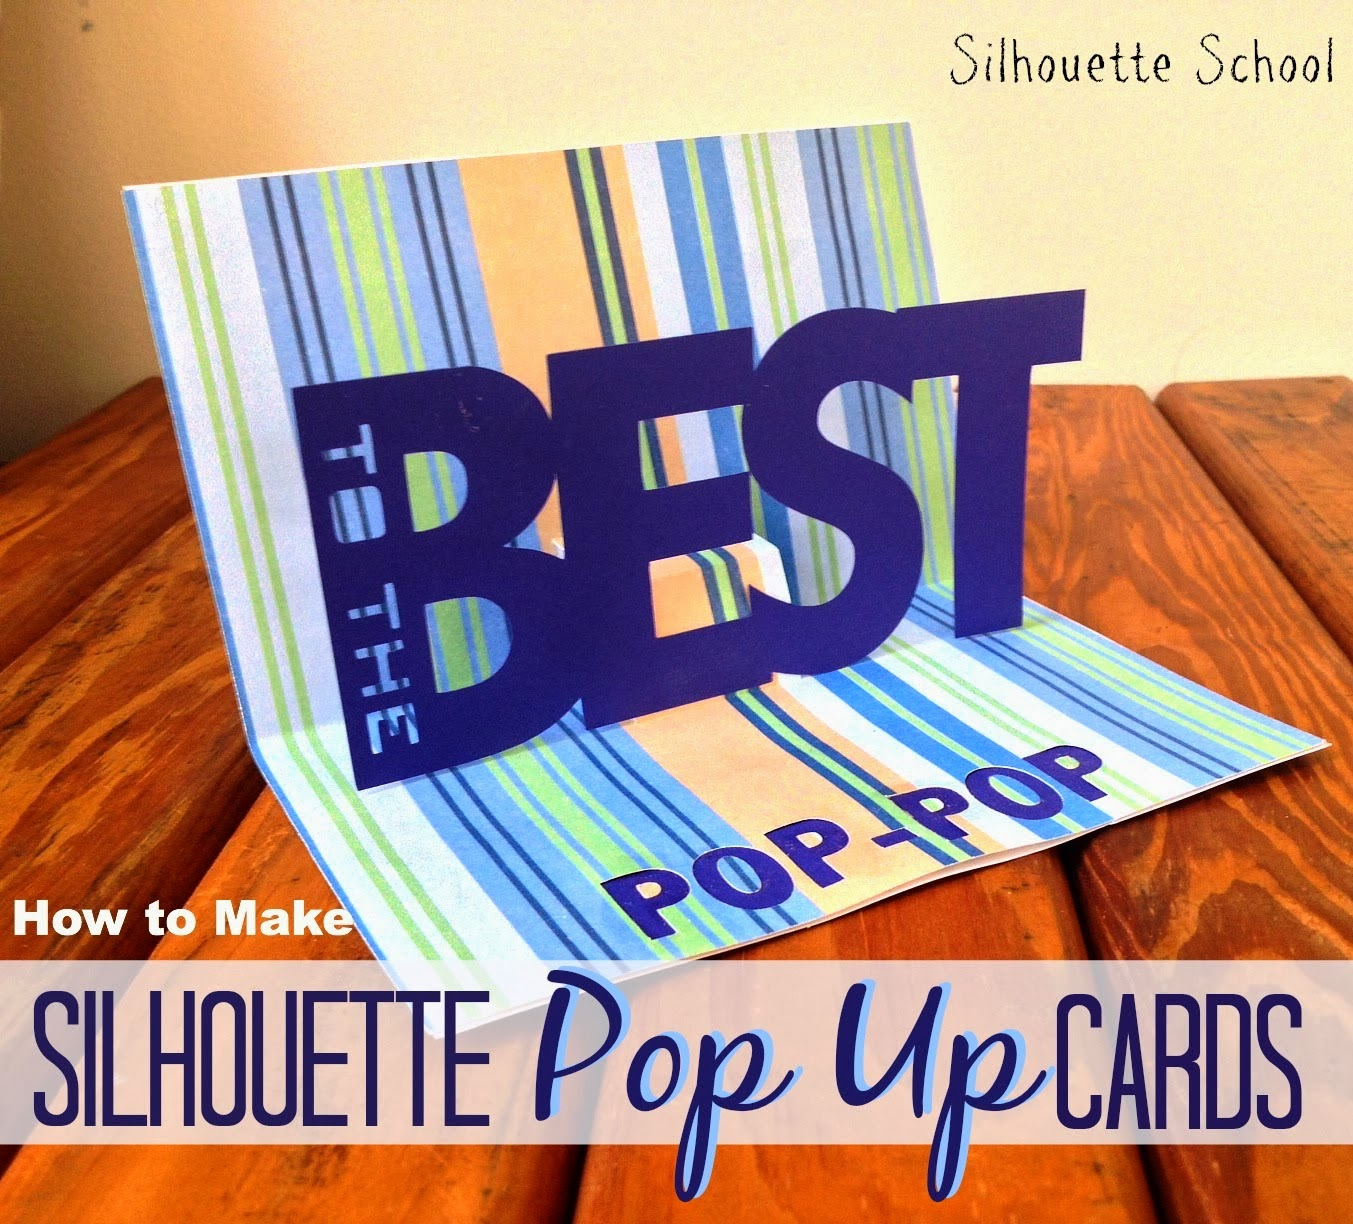 http://silhouetteschool.blogspot.com/2014/03/basic-silhouette-pop-up-card-tutorial.html#uds-search-results